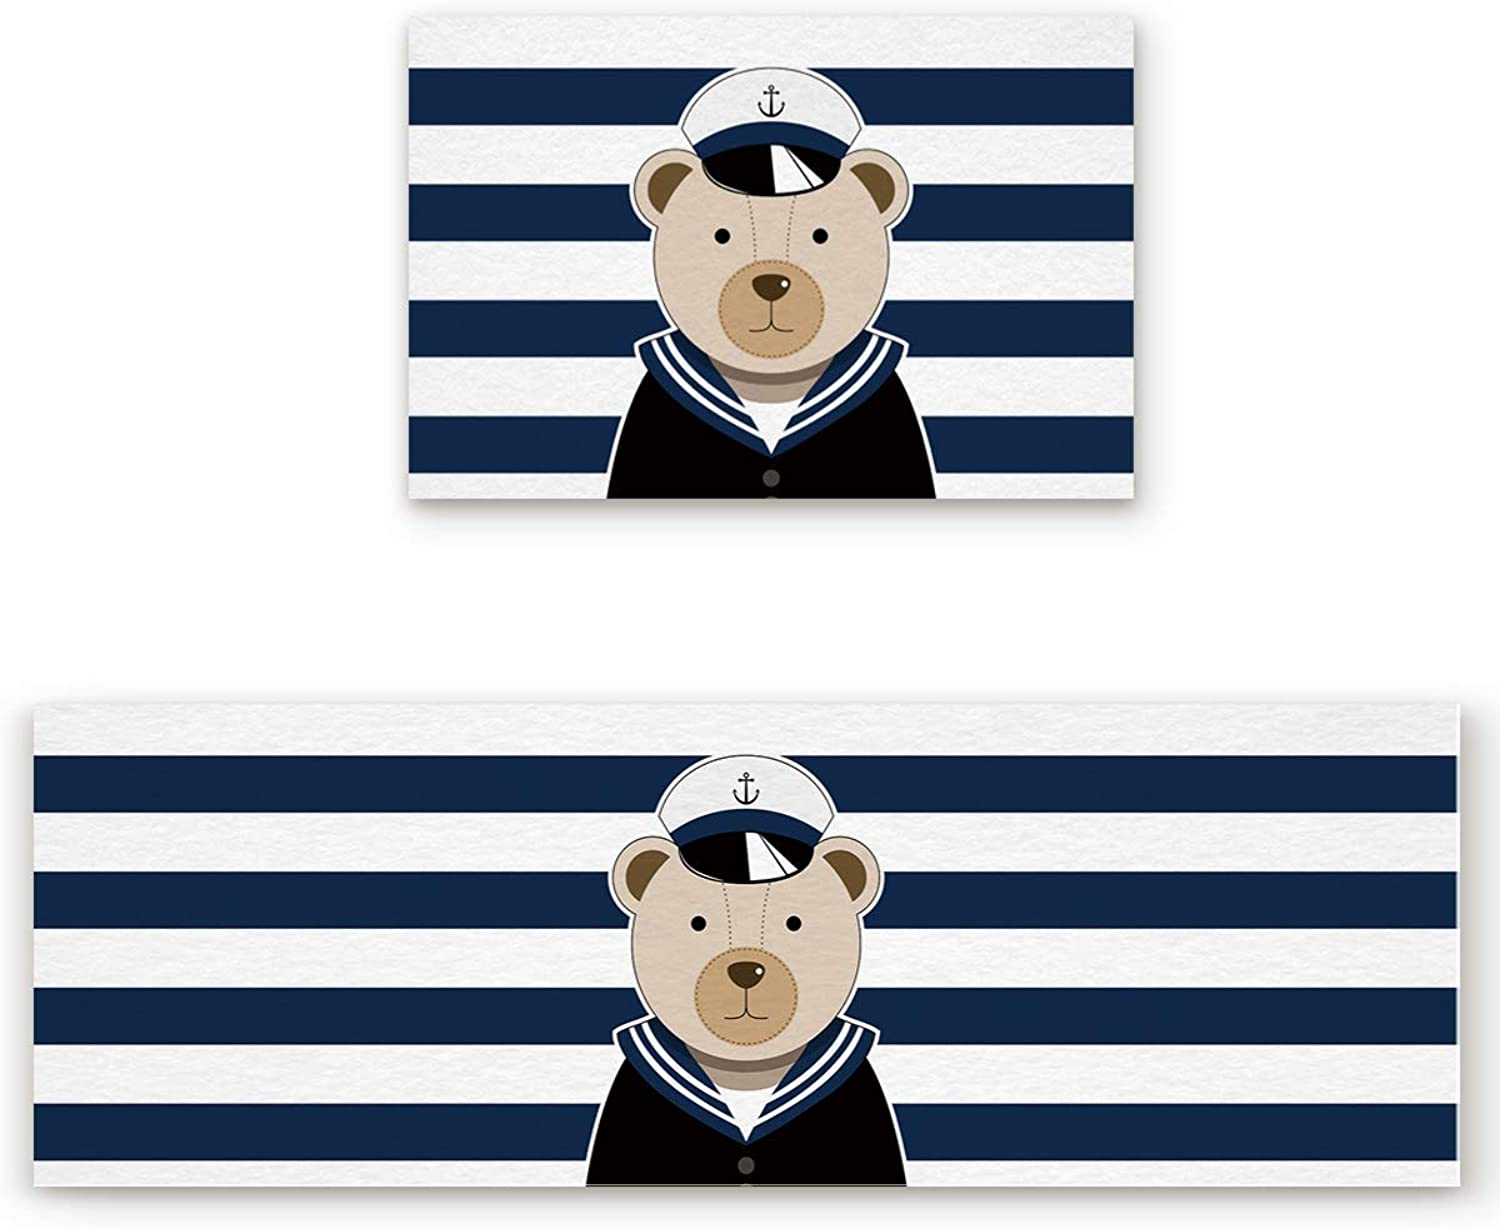 Animal Theme Door mat 2 Piece Set, Cute Bear Sailor Pattern bluee and White Doormat Rug,Decorative Felt Floor Mat with Non-Skid Backing,Fit for Indoor,Kitchen,Bedroom (19.7x31.5in+19.7x63in)